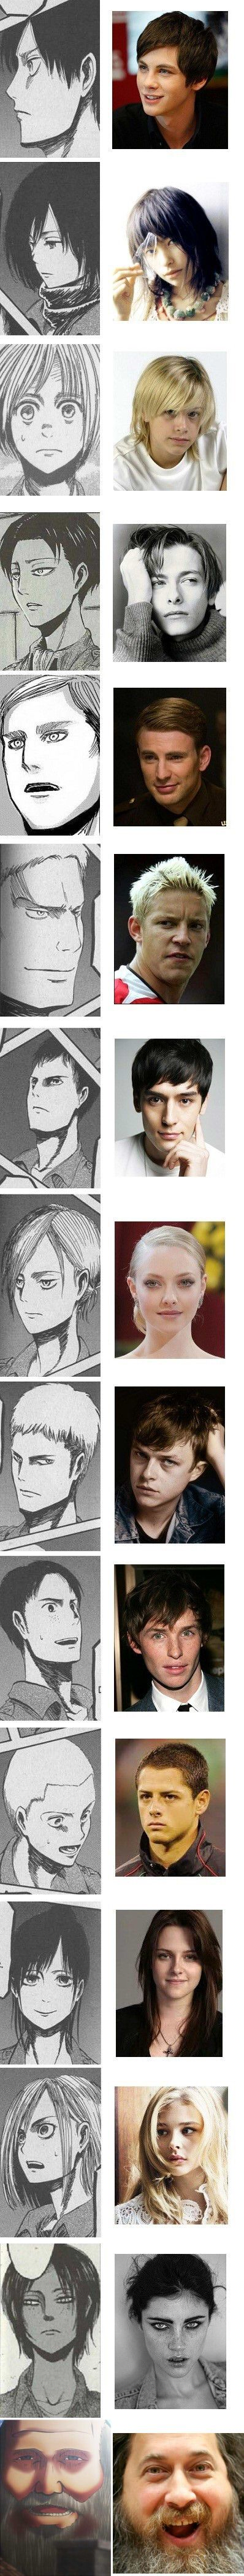 """Japanese Fans Suggest Foreign Cast for Live-Action """"Attack on Titan"""" (and it is PERFECT!)"""